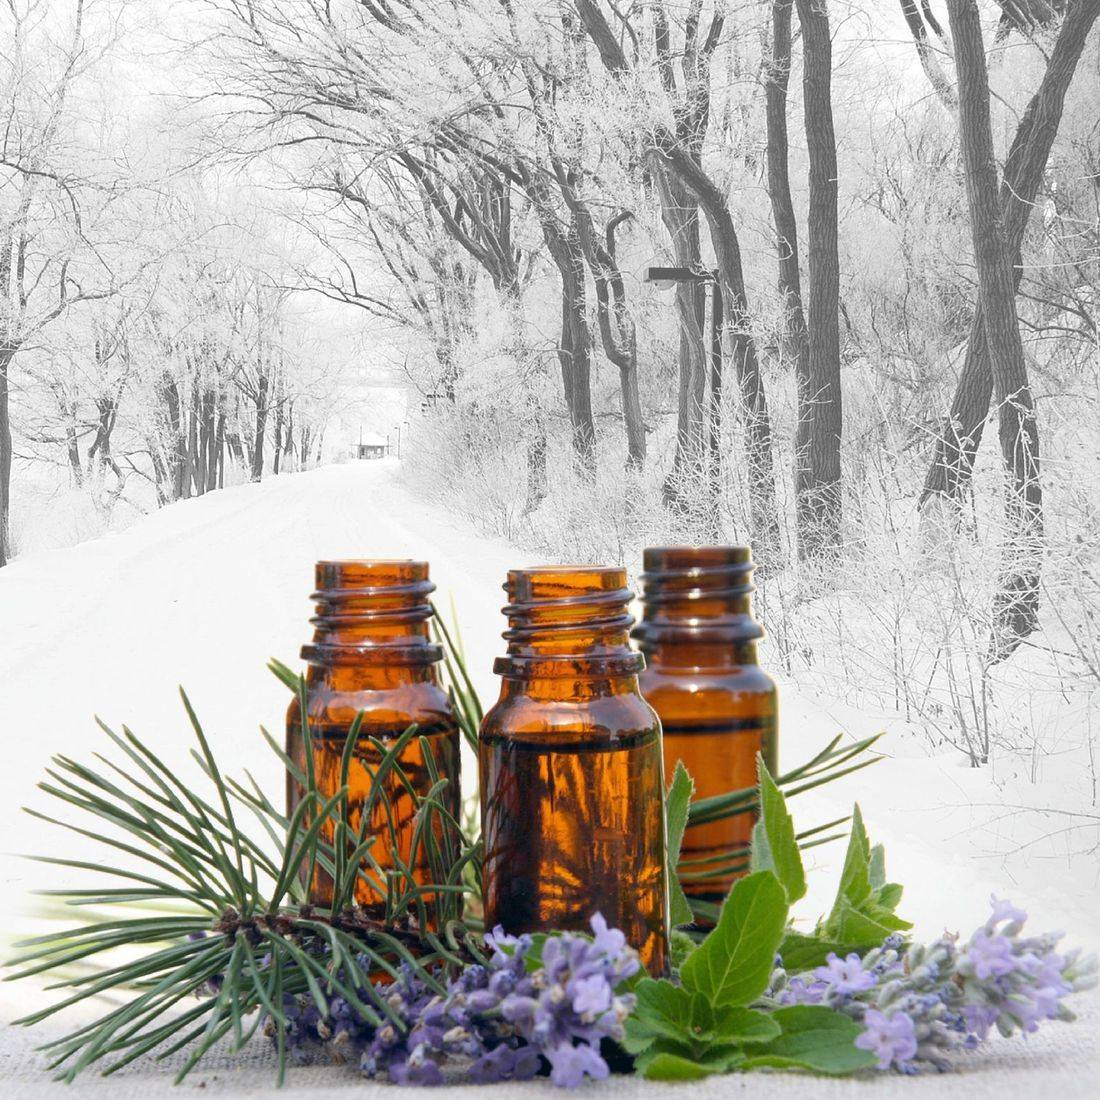 Fort saskatchewan, fort sask,essential oil ; massage therapy ; ginger ; eucalyptus ; thyme ; tea tree ; diffuser